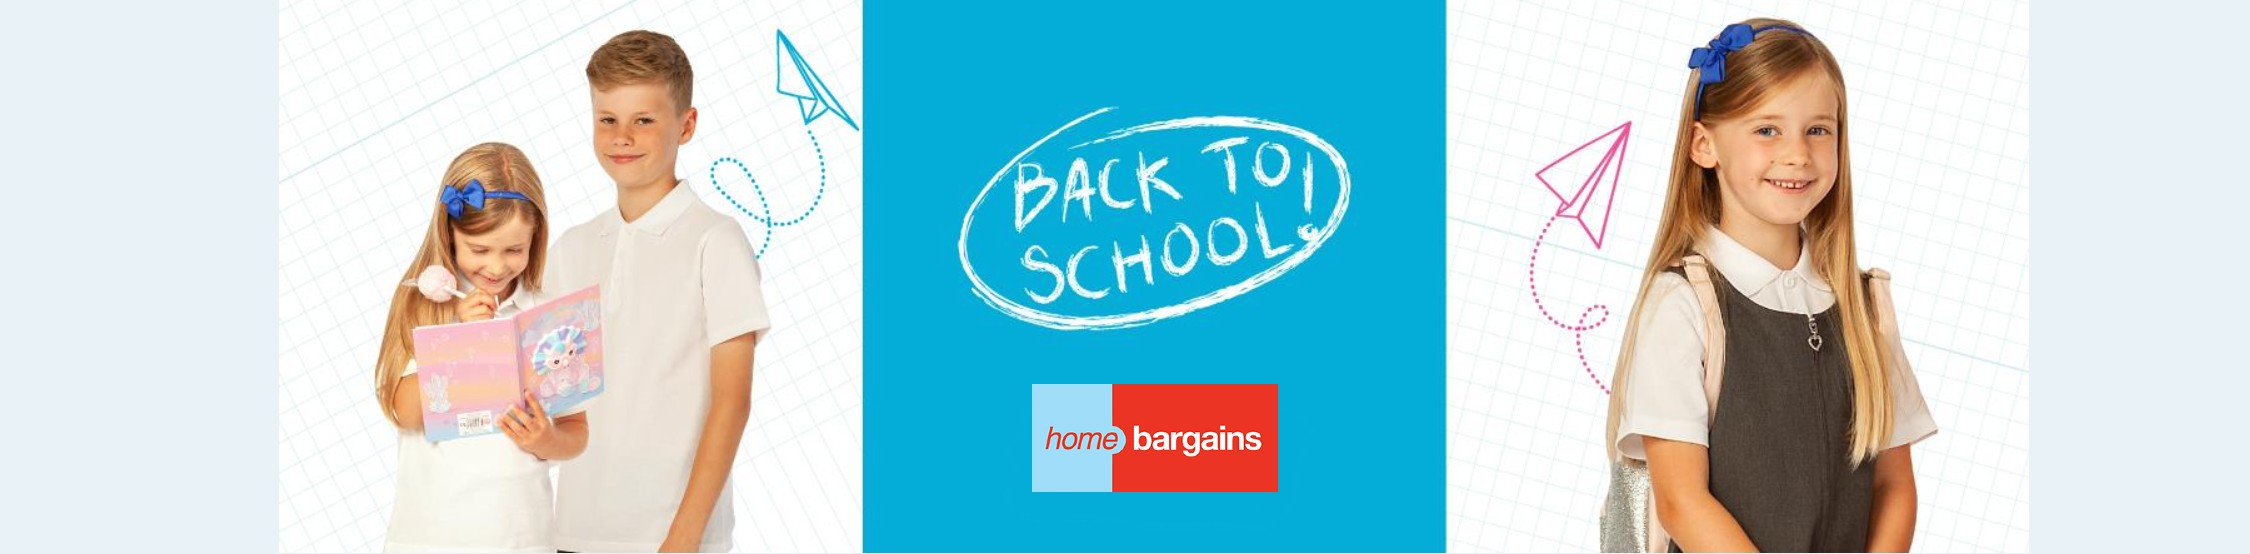 back to school at home bargains